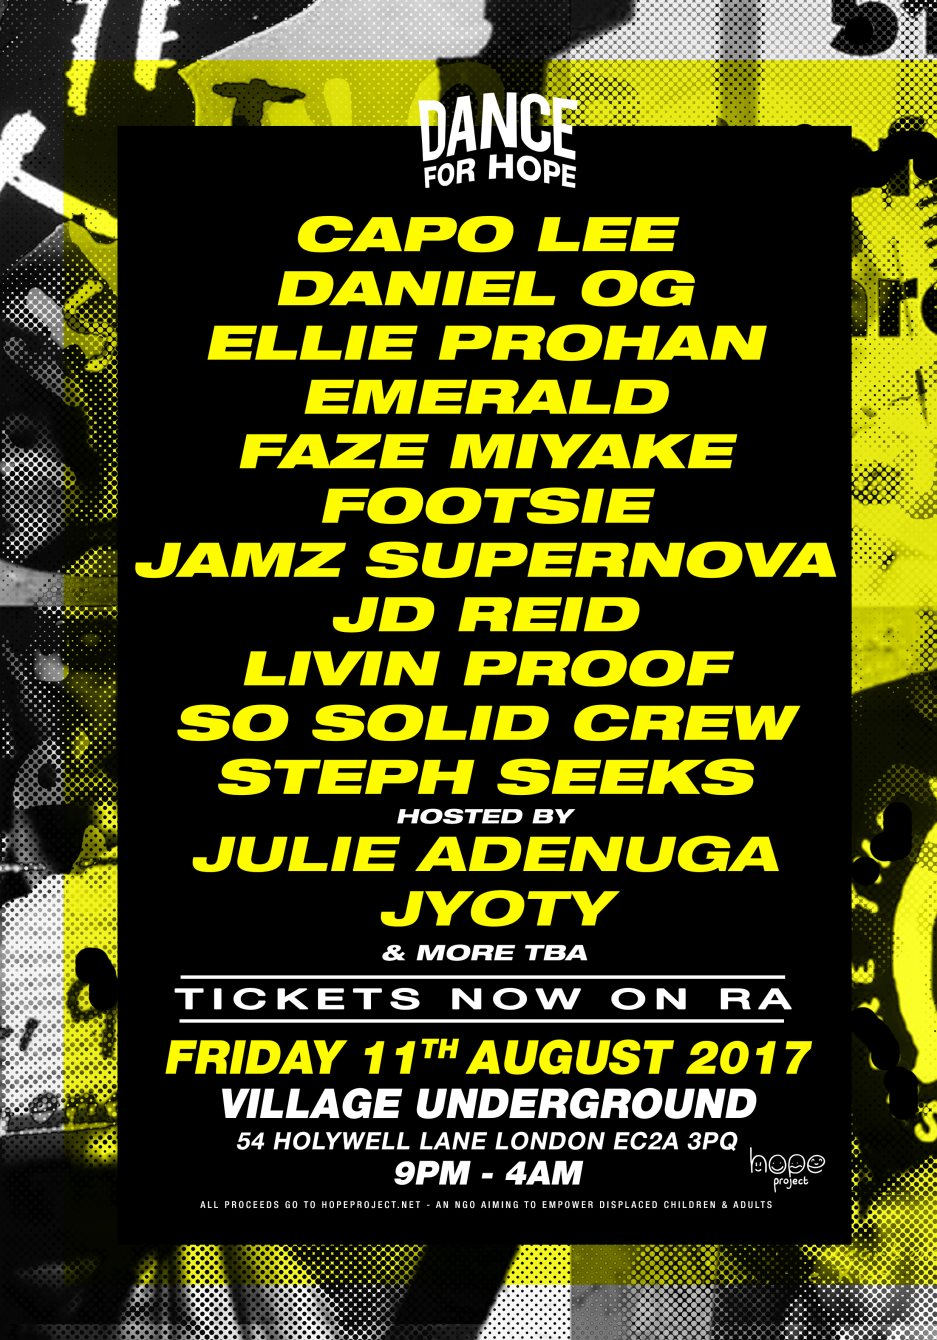 Dance For Hope: So Solid Crew, Footsie, Jamz Supernova and More - Flyer front